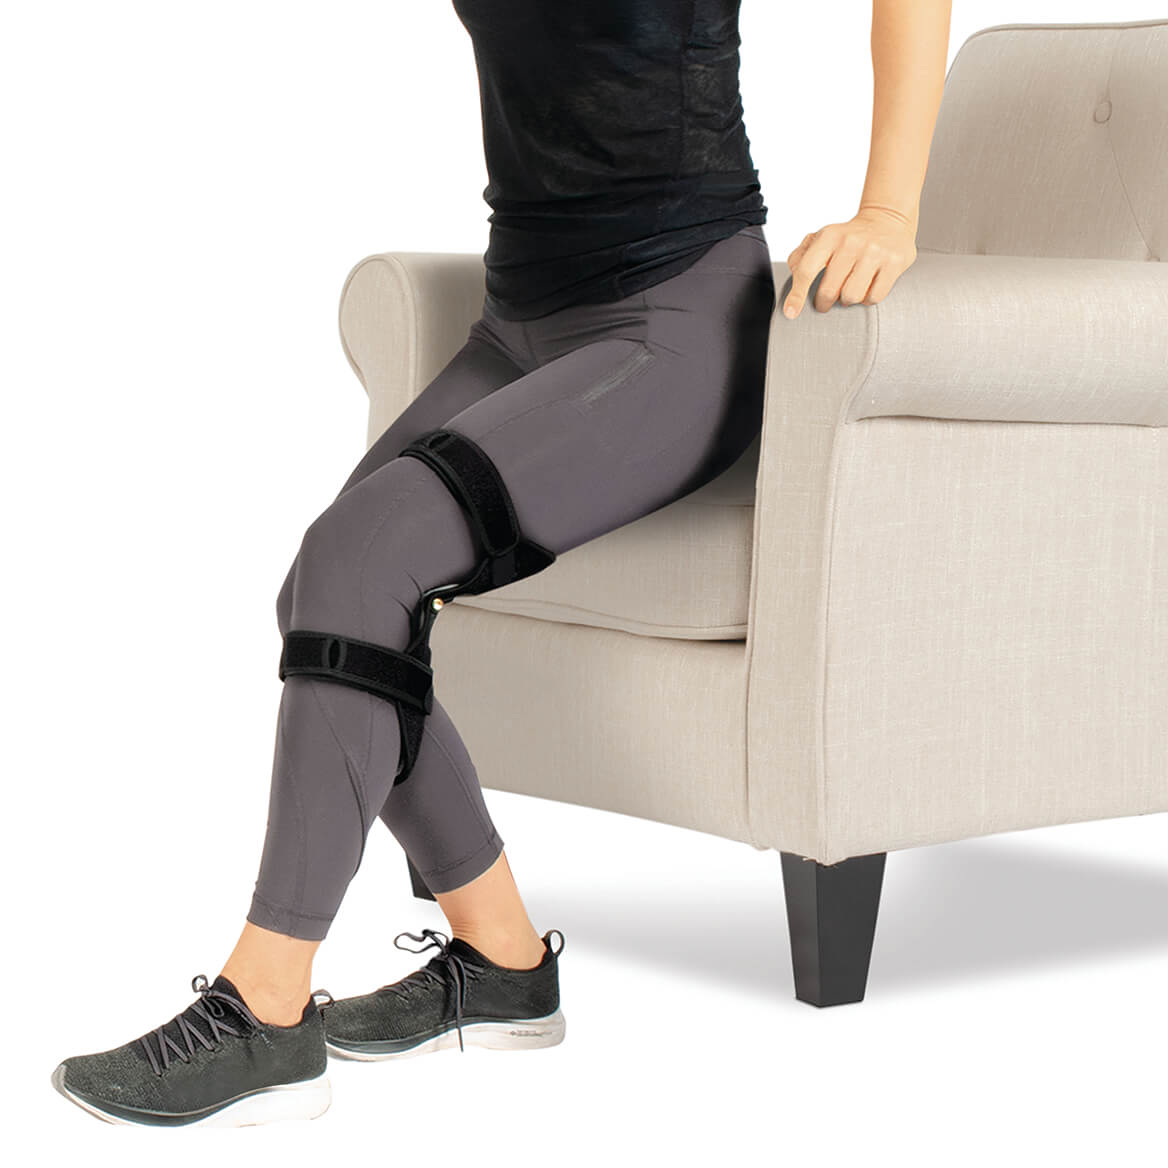 Spring-Powered Knee Support-370766